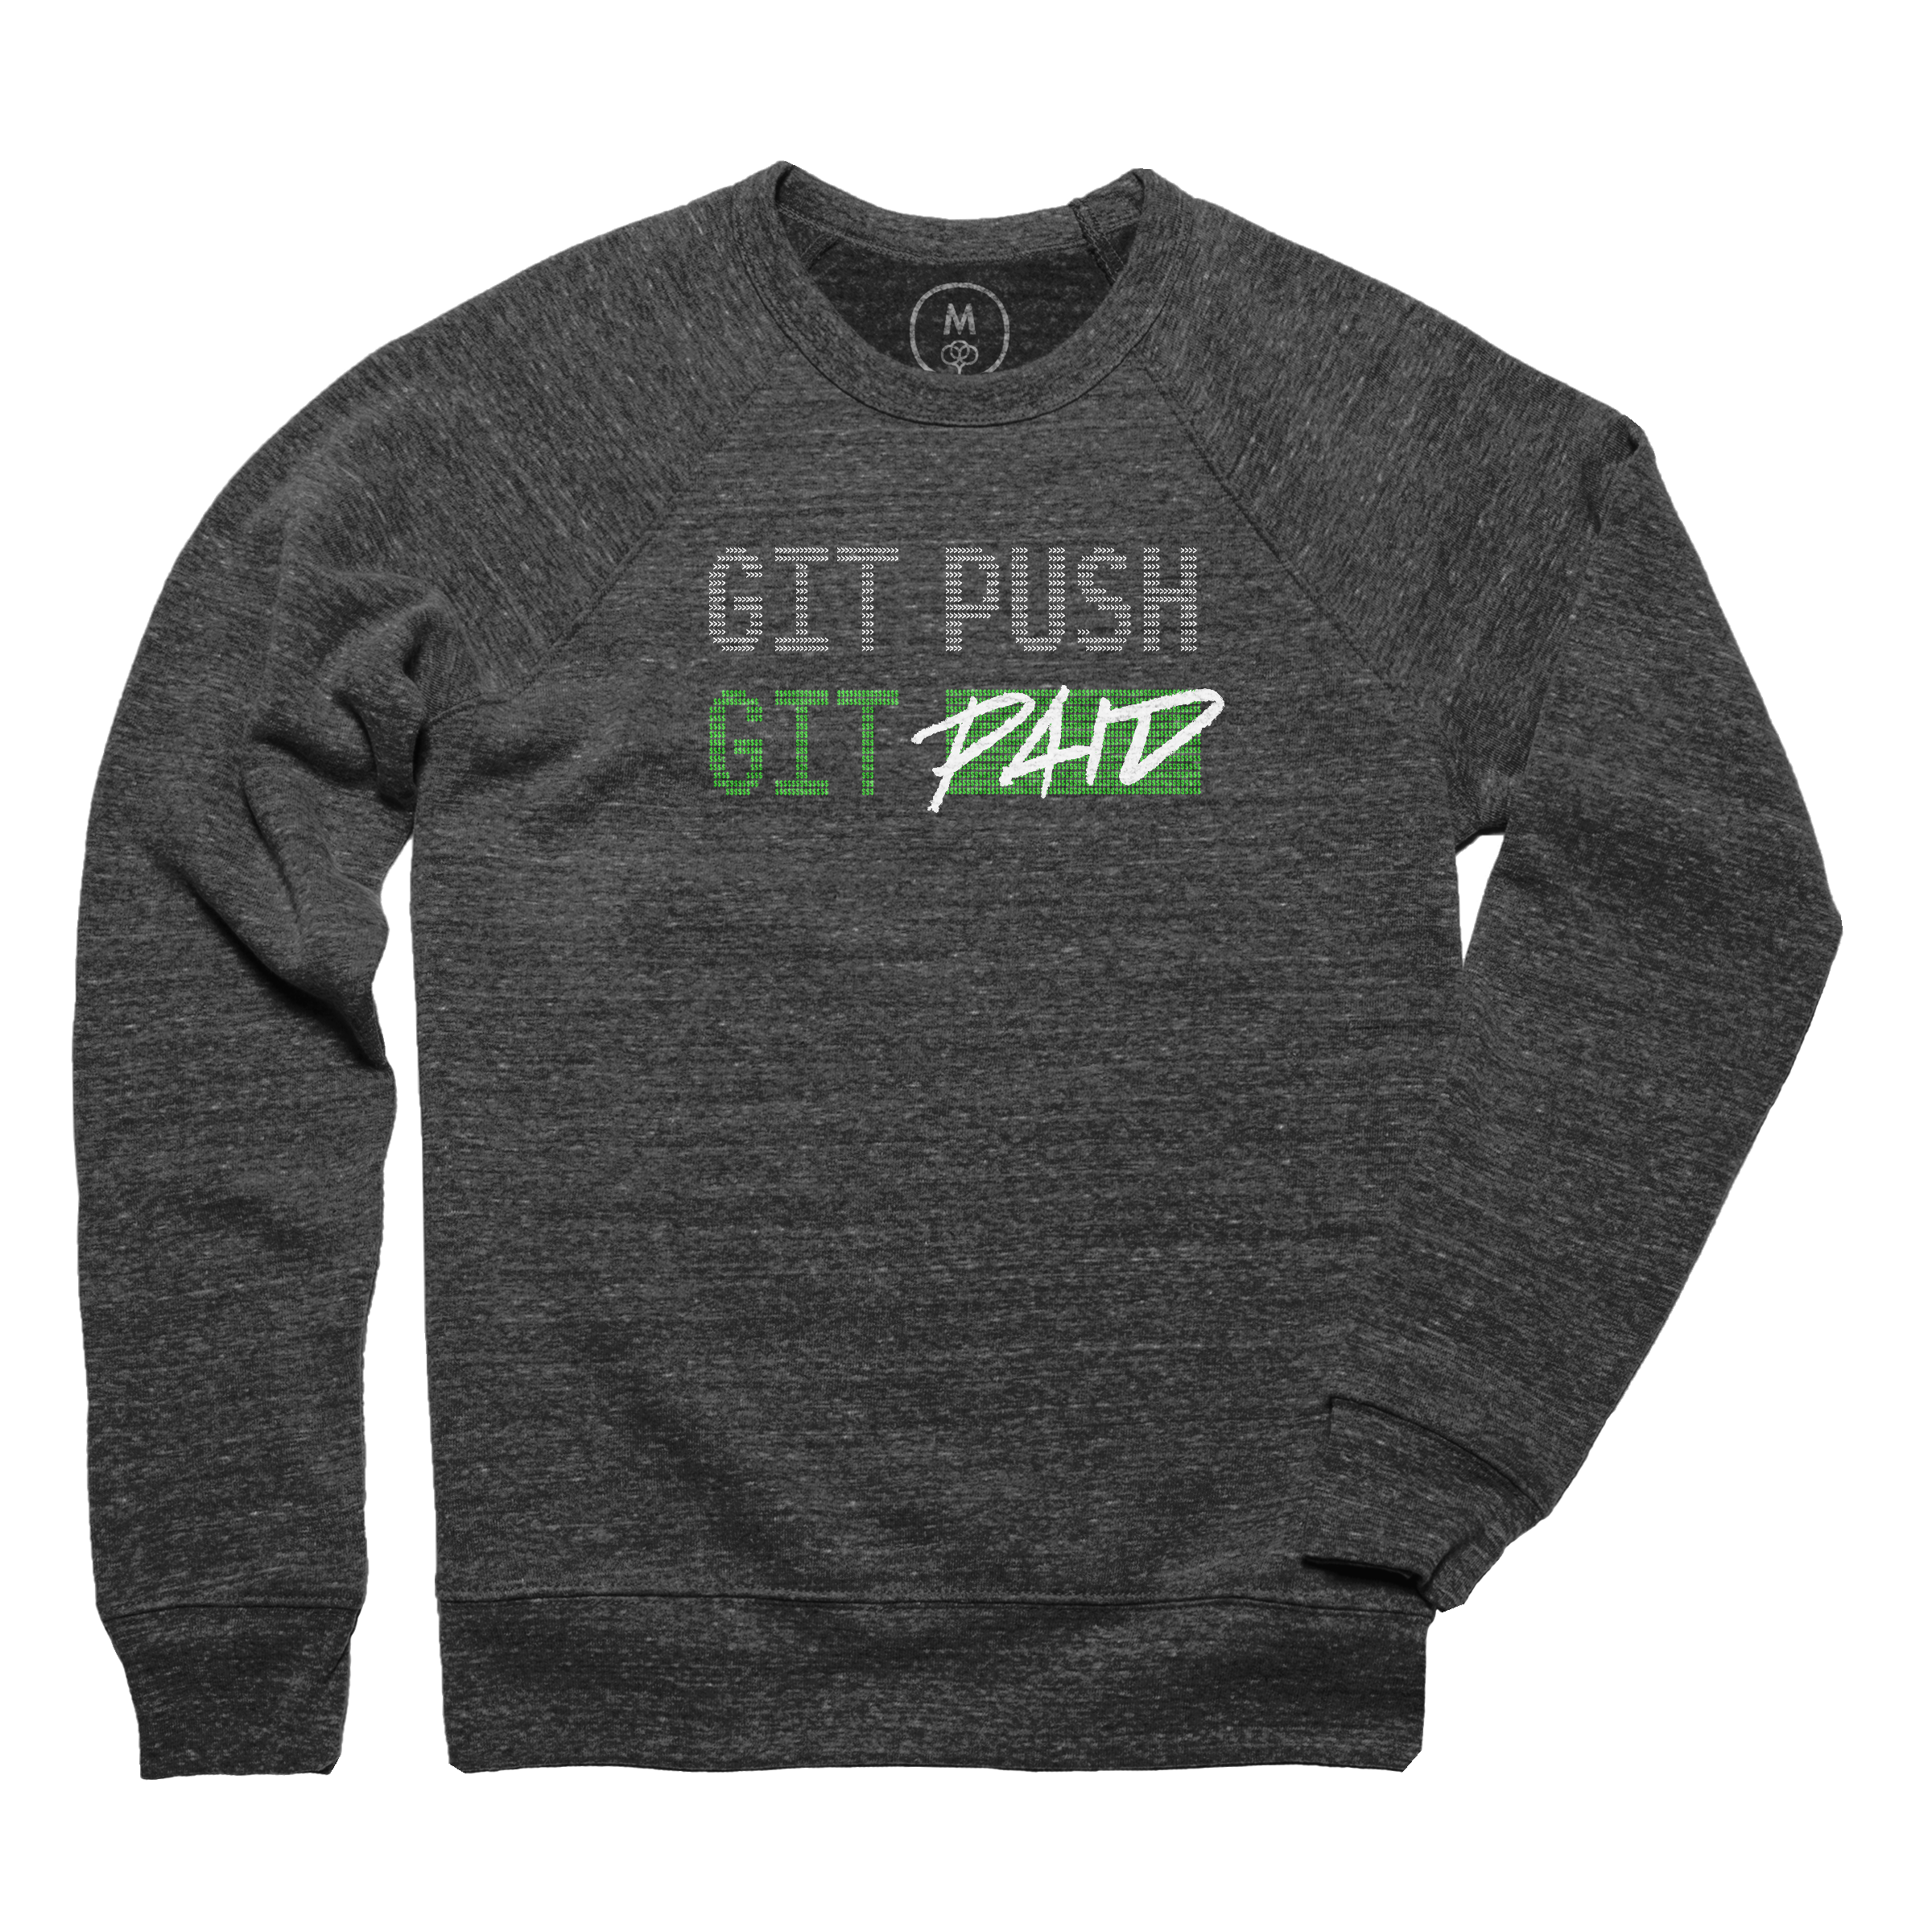 GIT PUSH && GIT PAID Pullover Hoodie